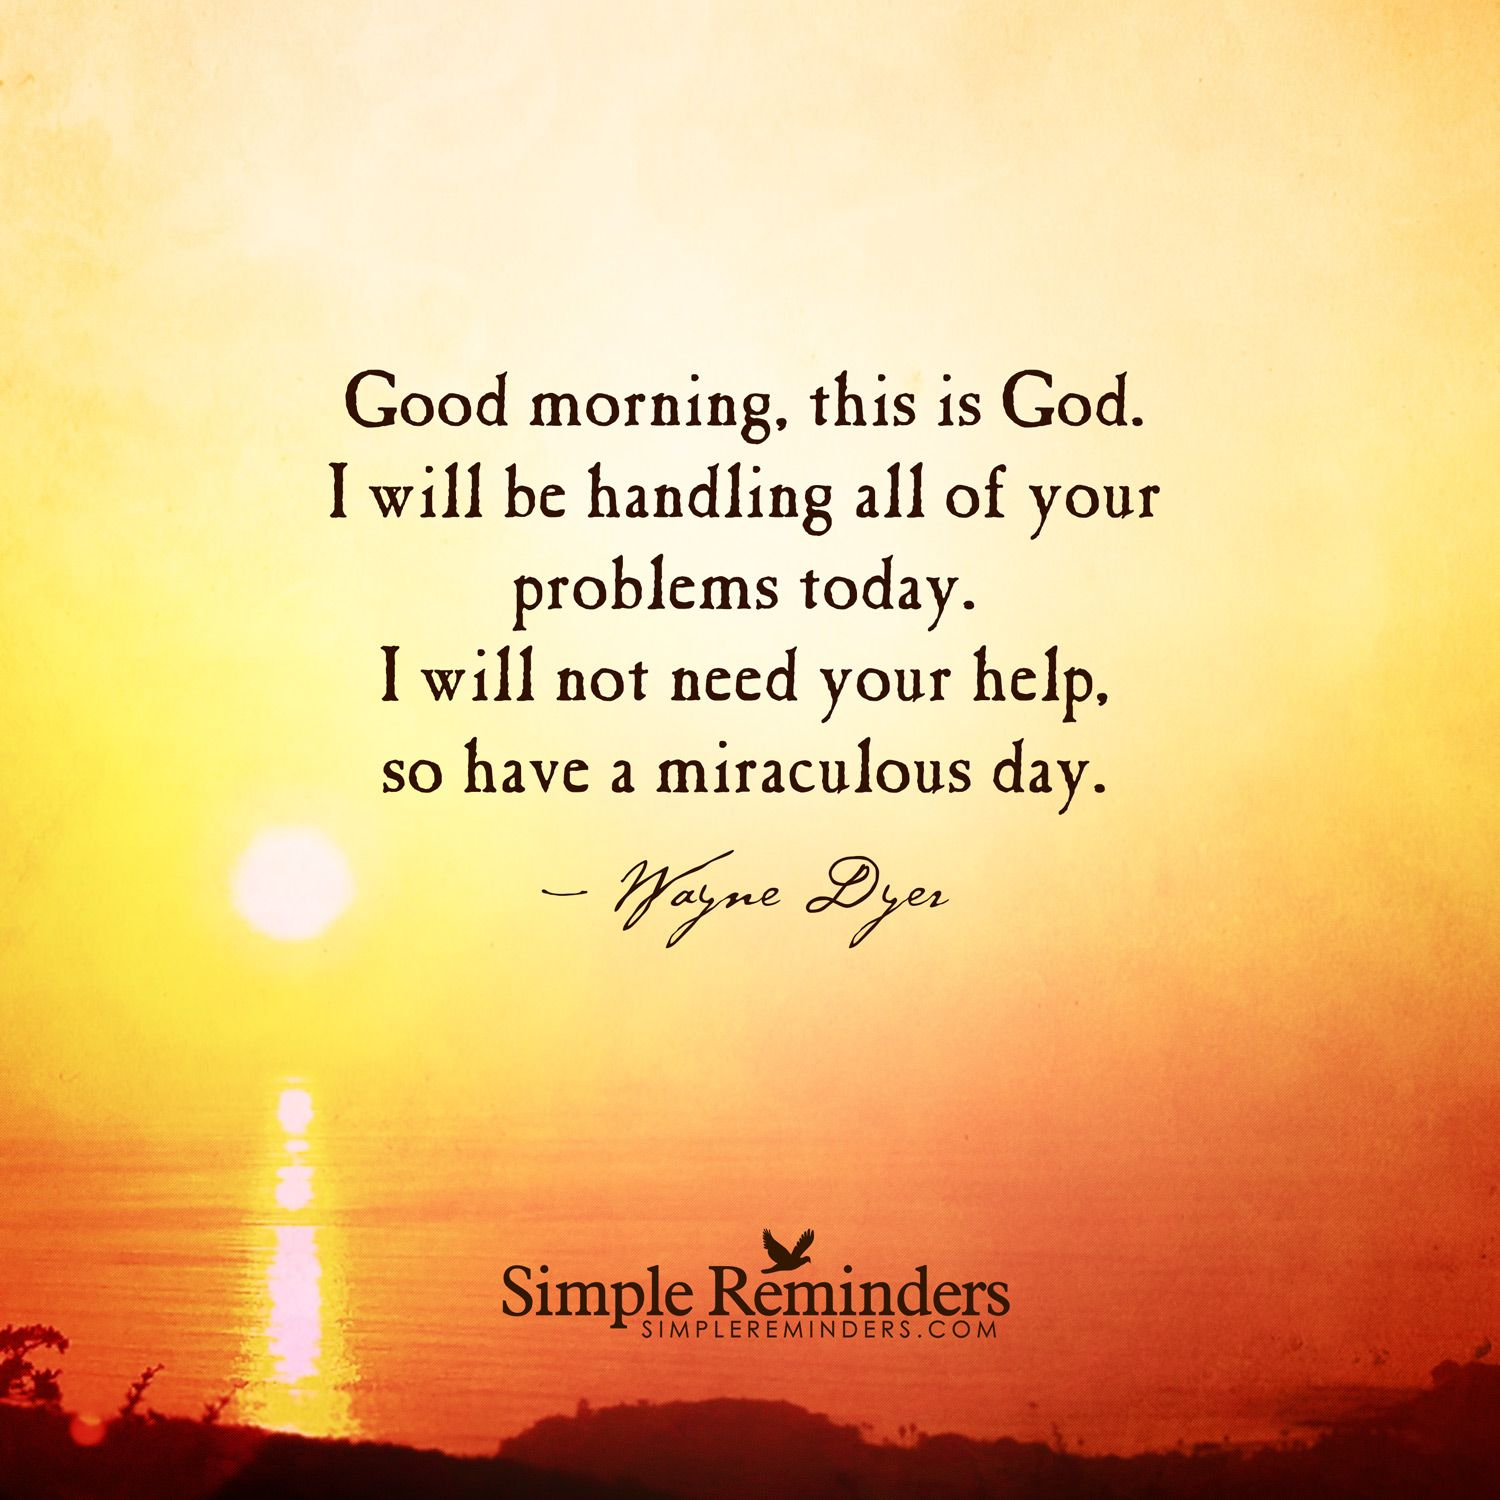 Inspirational Quotes On Pinterest: Good Morning, This Is God. I Will Be Handling All Of Your